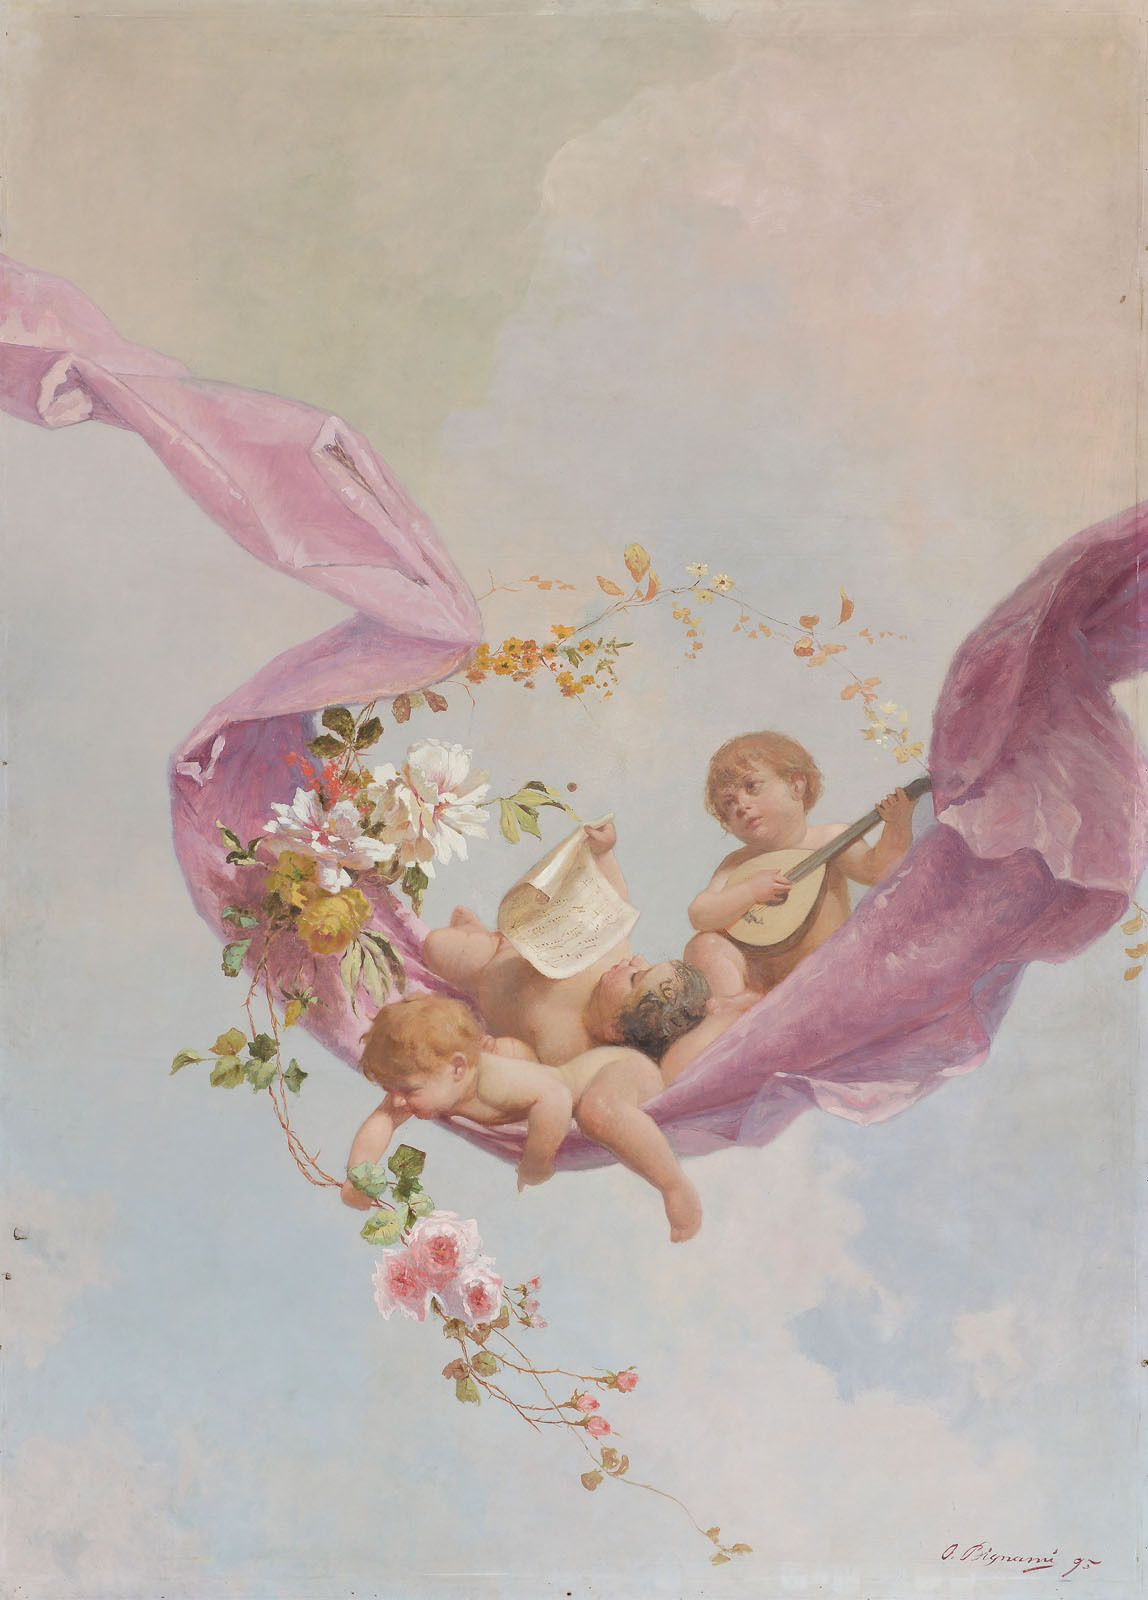 Pin By Vista Thomas On Photos For Every Aesthetic Angel Wallpaper Romantic Art Angel Painting Aesthetic wallpaper angels romantic